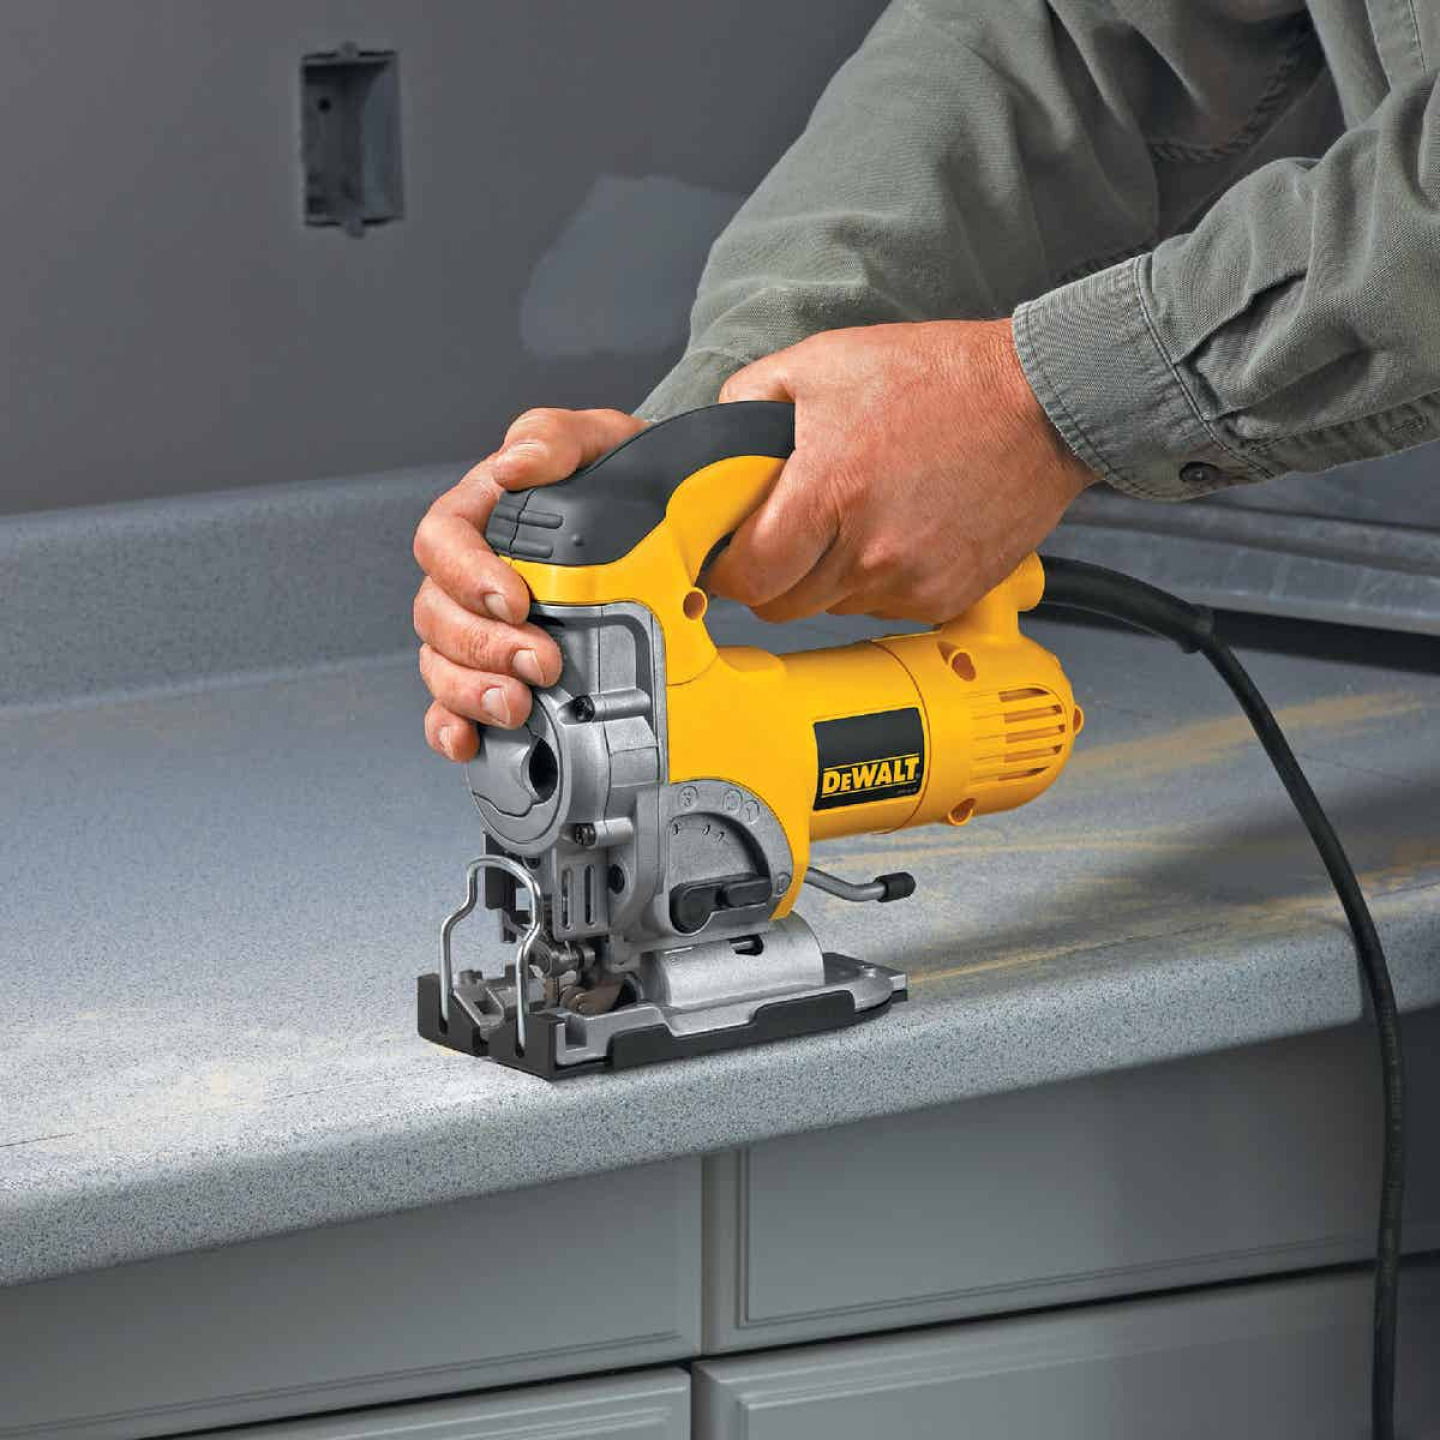 DeWalt 6.5A 4-Position 500-3100 SPM Jig Saw Kit Image 7